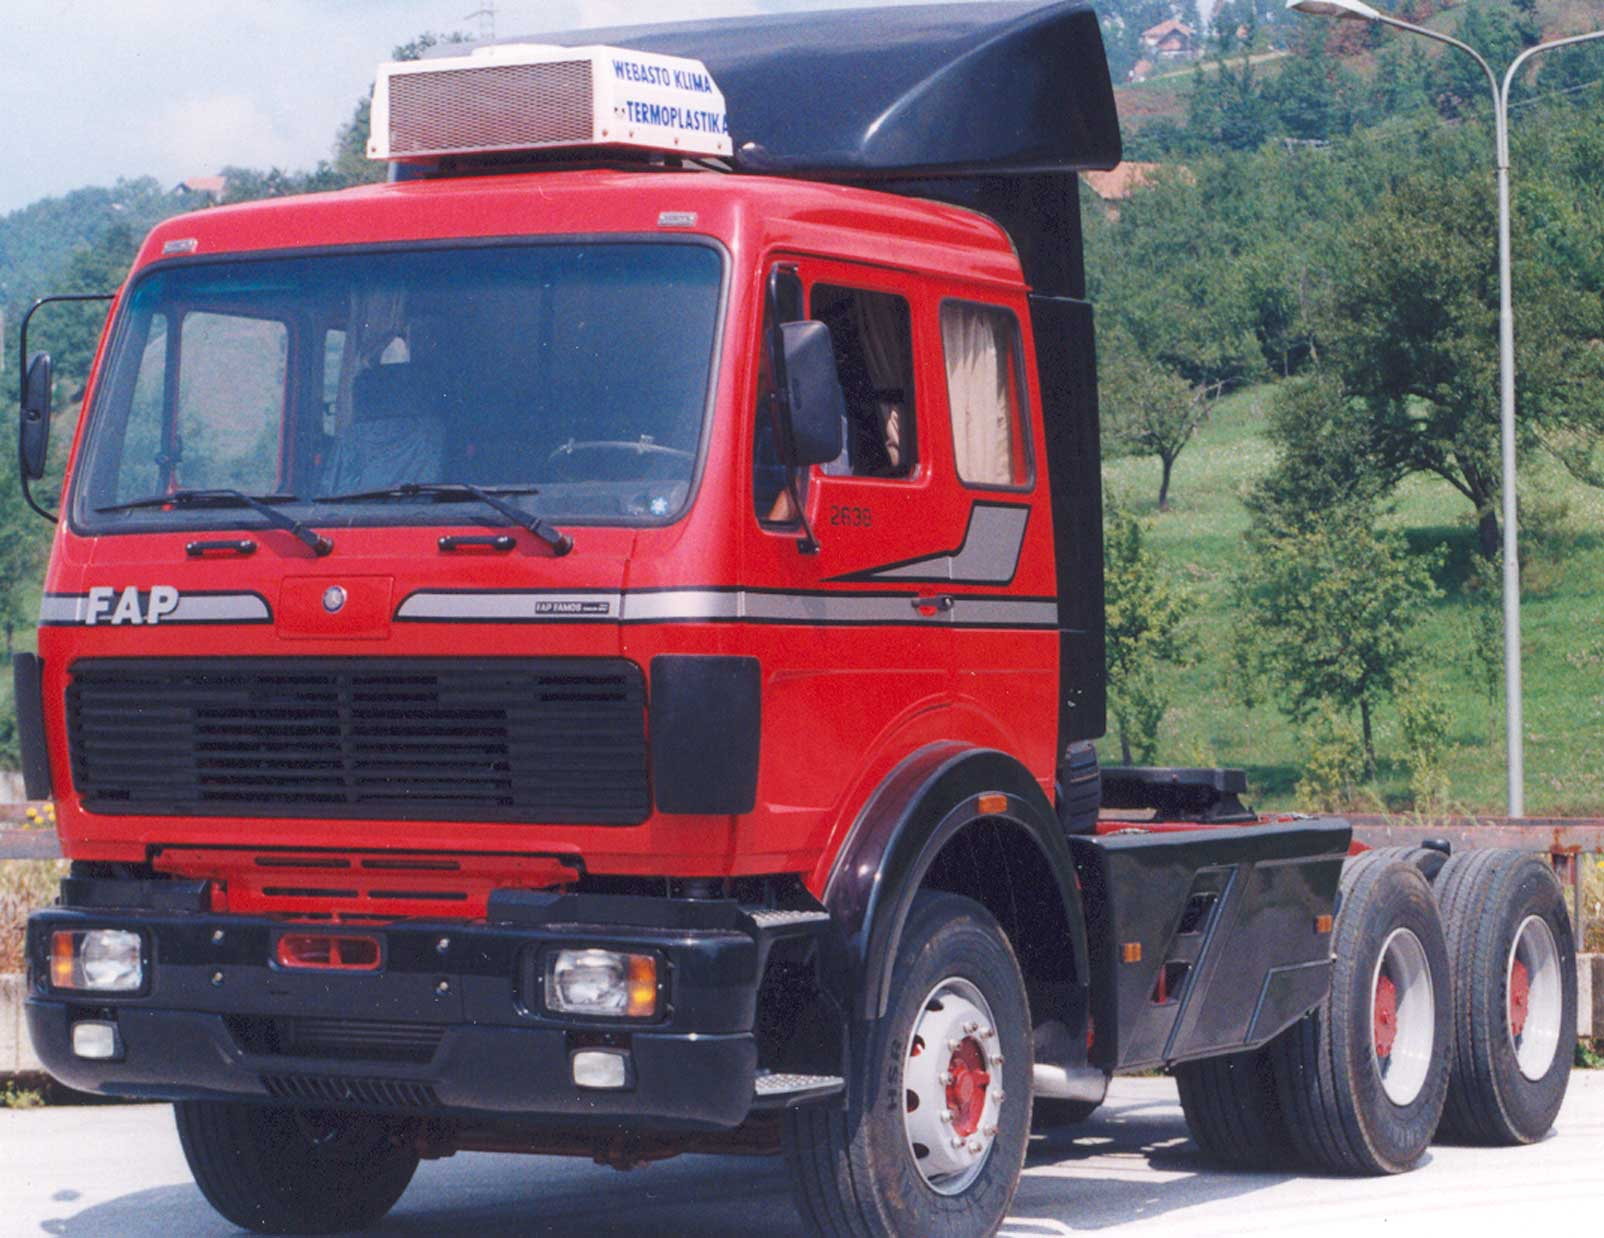 Serbia to take control of truck maker FAP